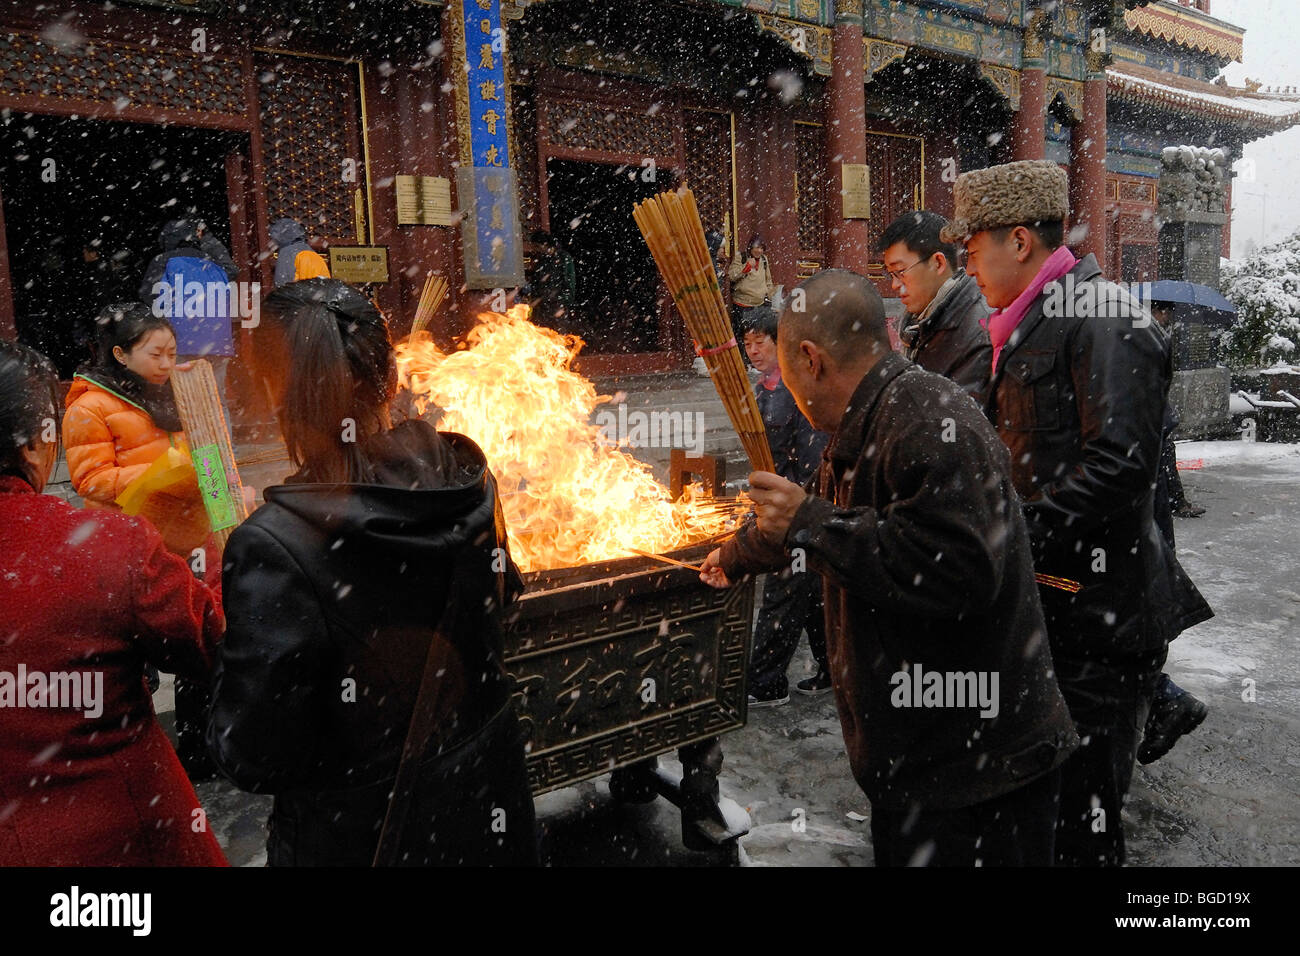 Chinese men and women lighting incense on an open fire to during heavy snowfall, snowy Buddhist Lama Temple in the Stock Photo